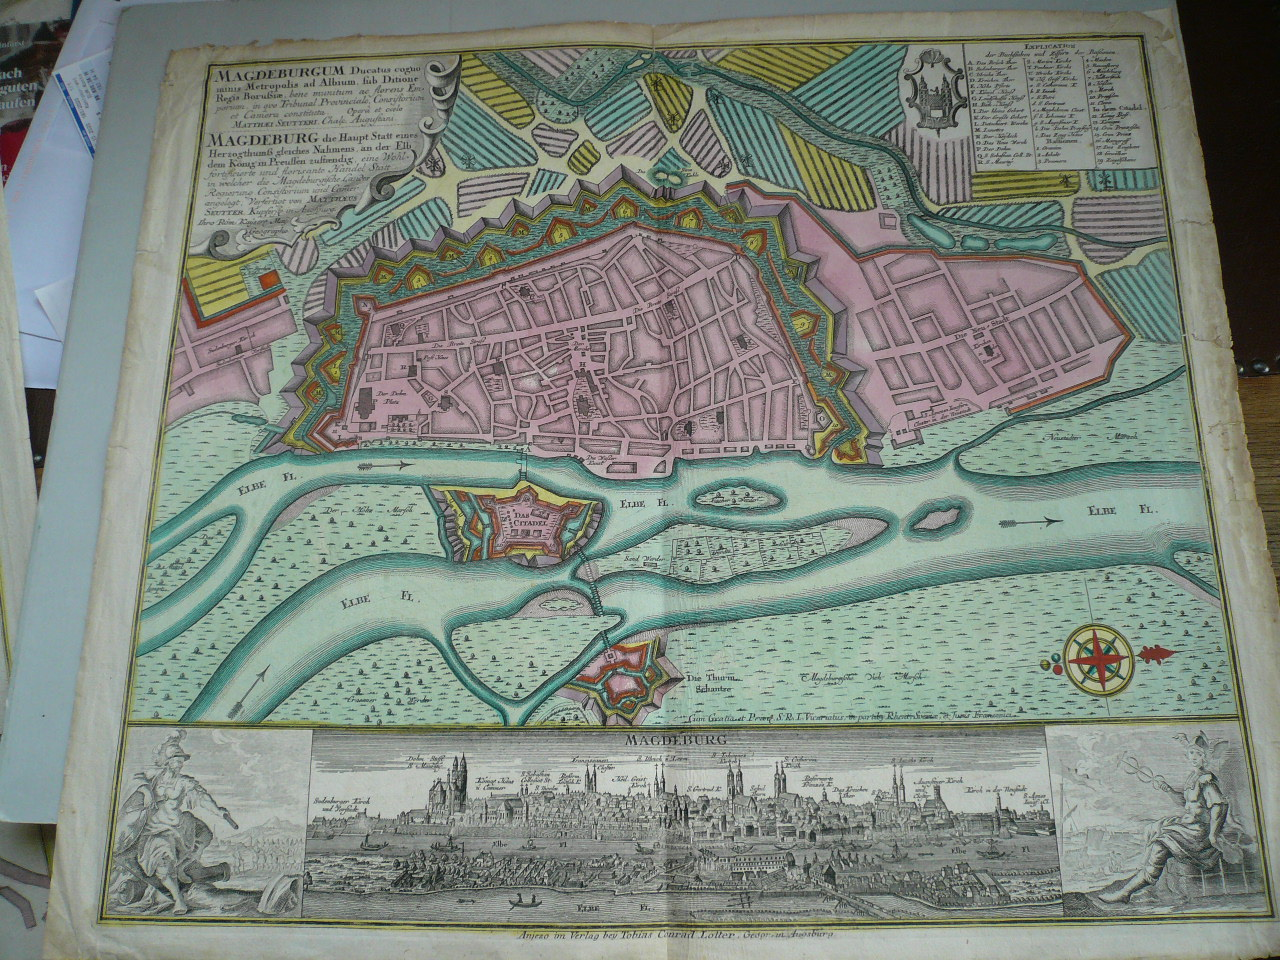 Magdeburg, Plan+Panorama, anno 1770, Lotter T.C., altkoloriert